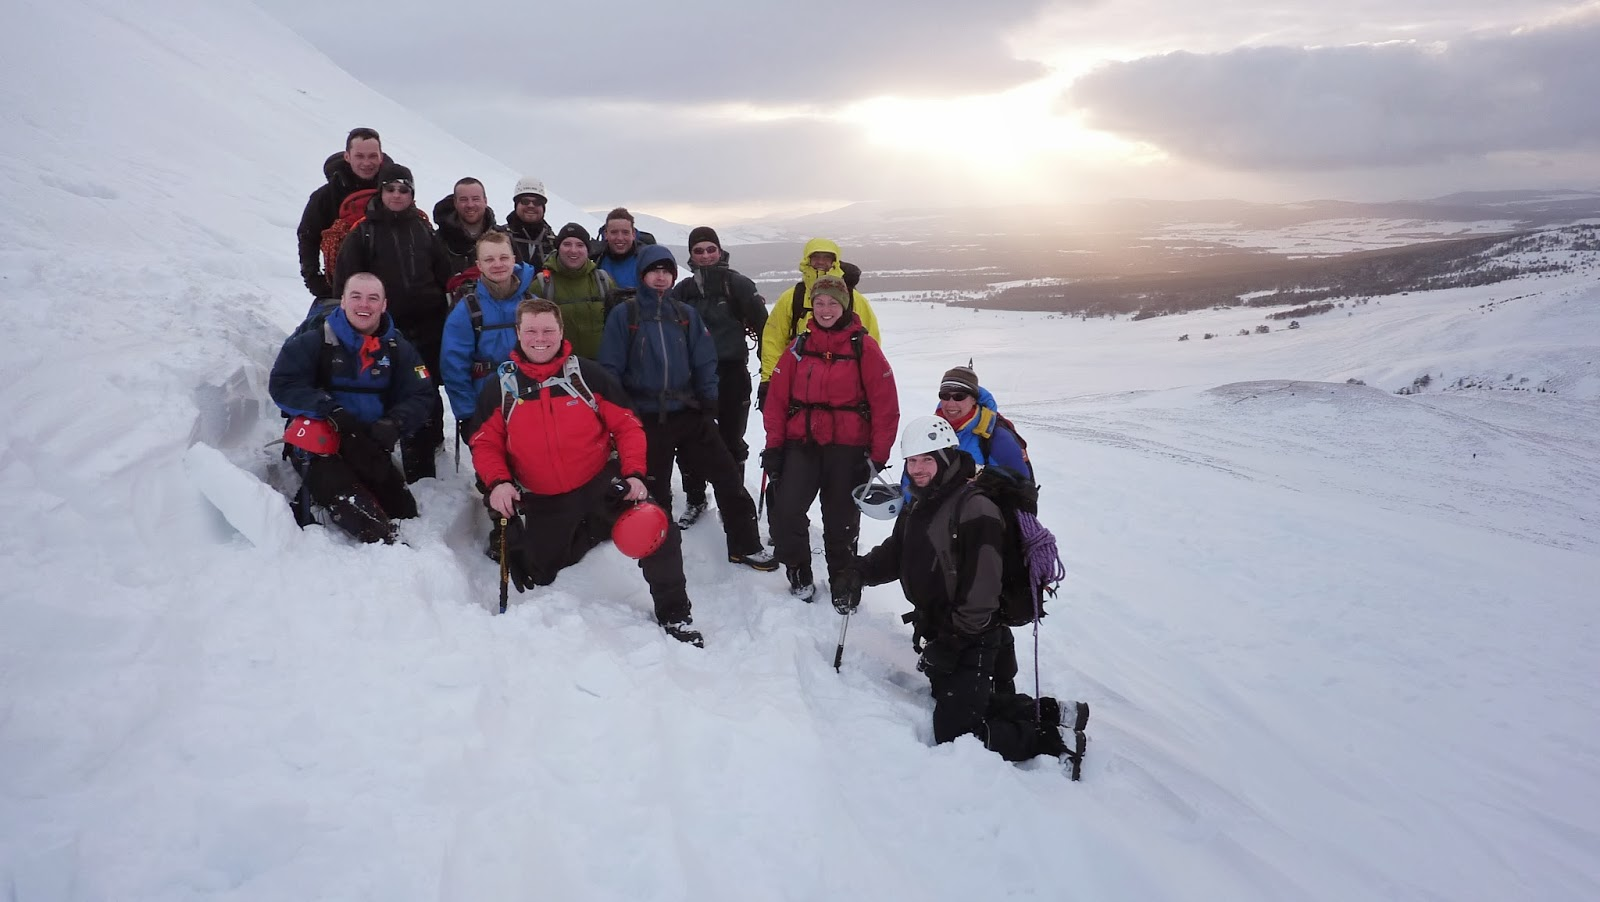 On our Winter Skills Training Courses we will show you all of the